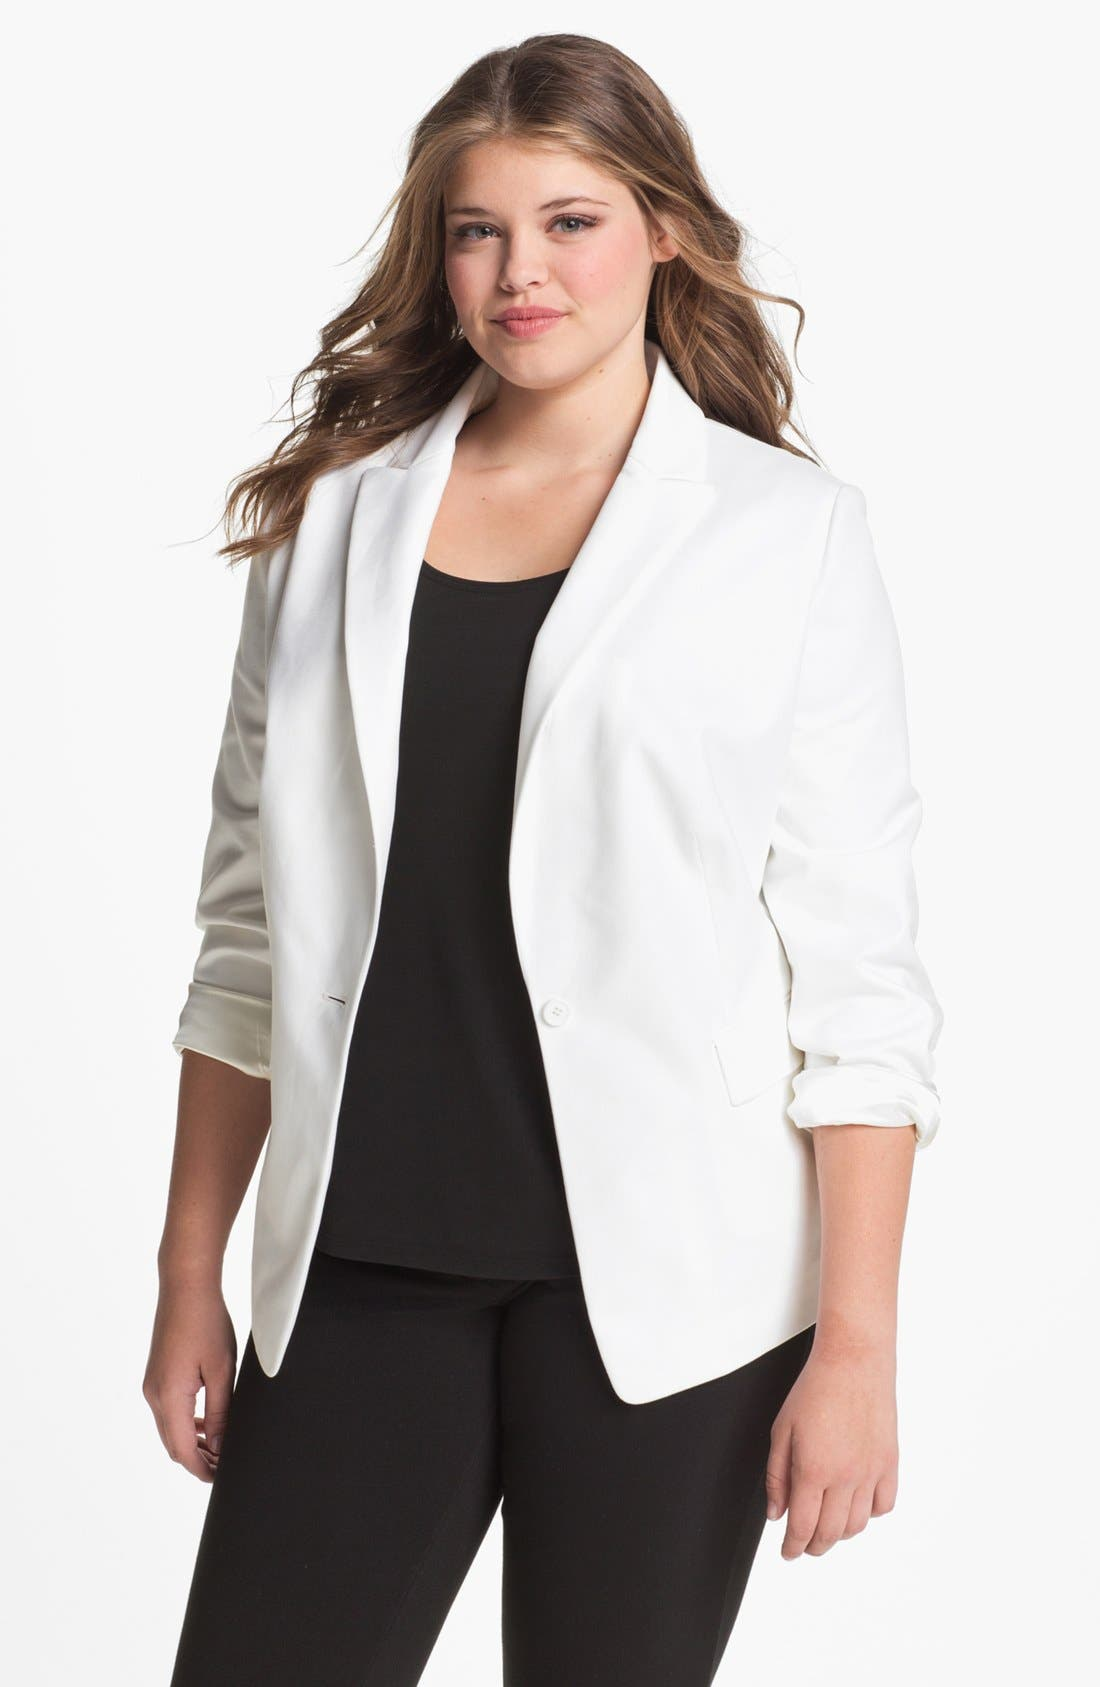 Alternate Image 1 Selected - Tahari Woman 'Carina' Jacket (Plus)